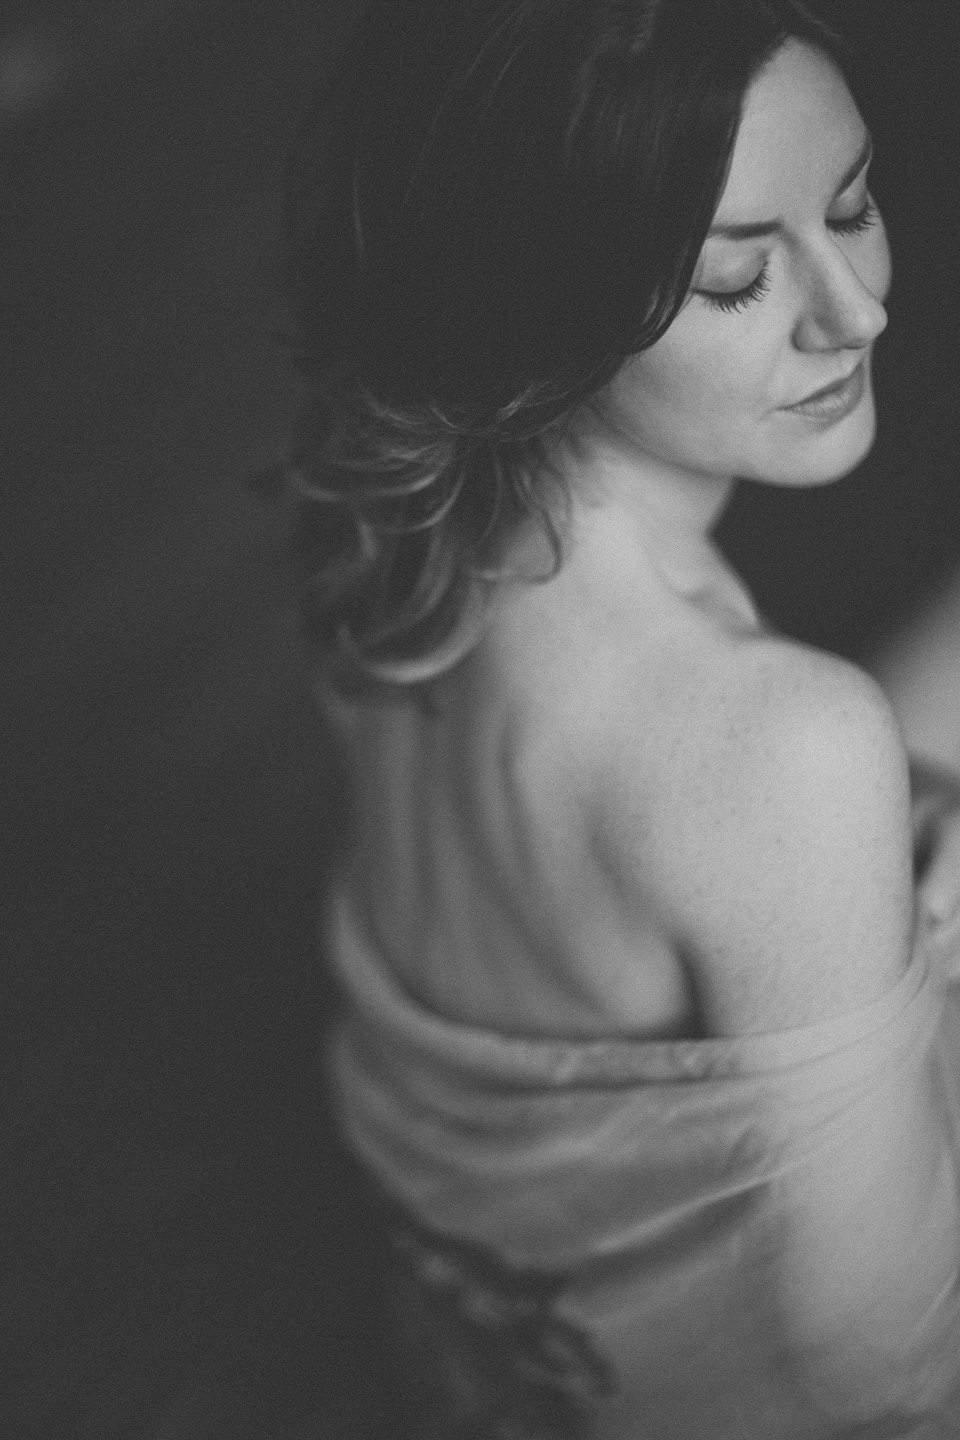 Boudoir photographer portland, OR